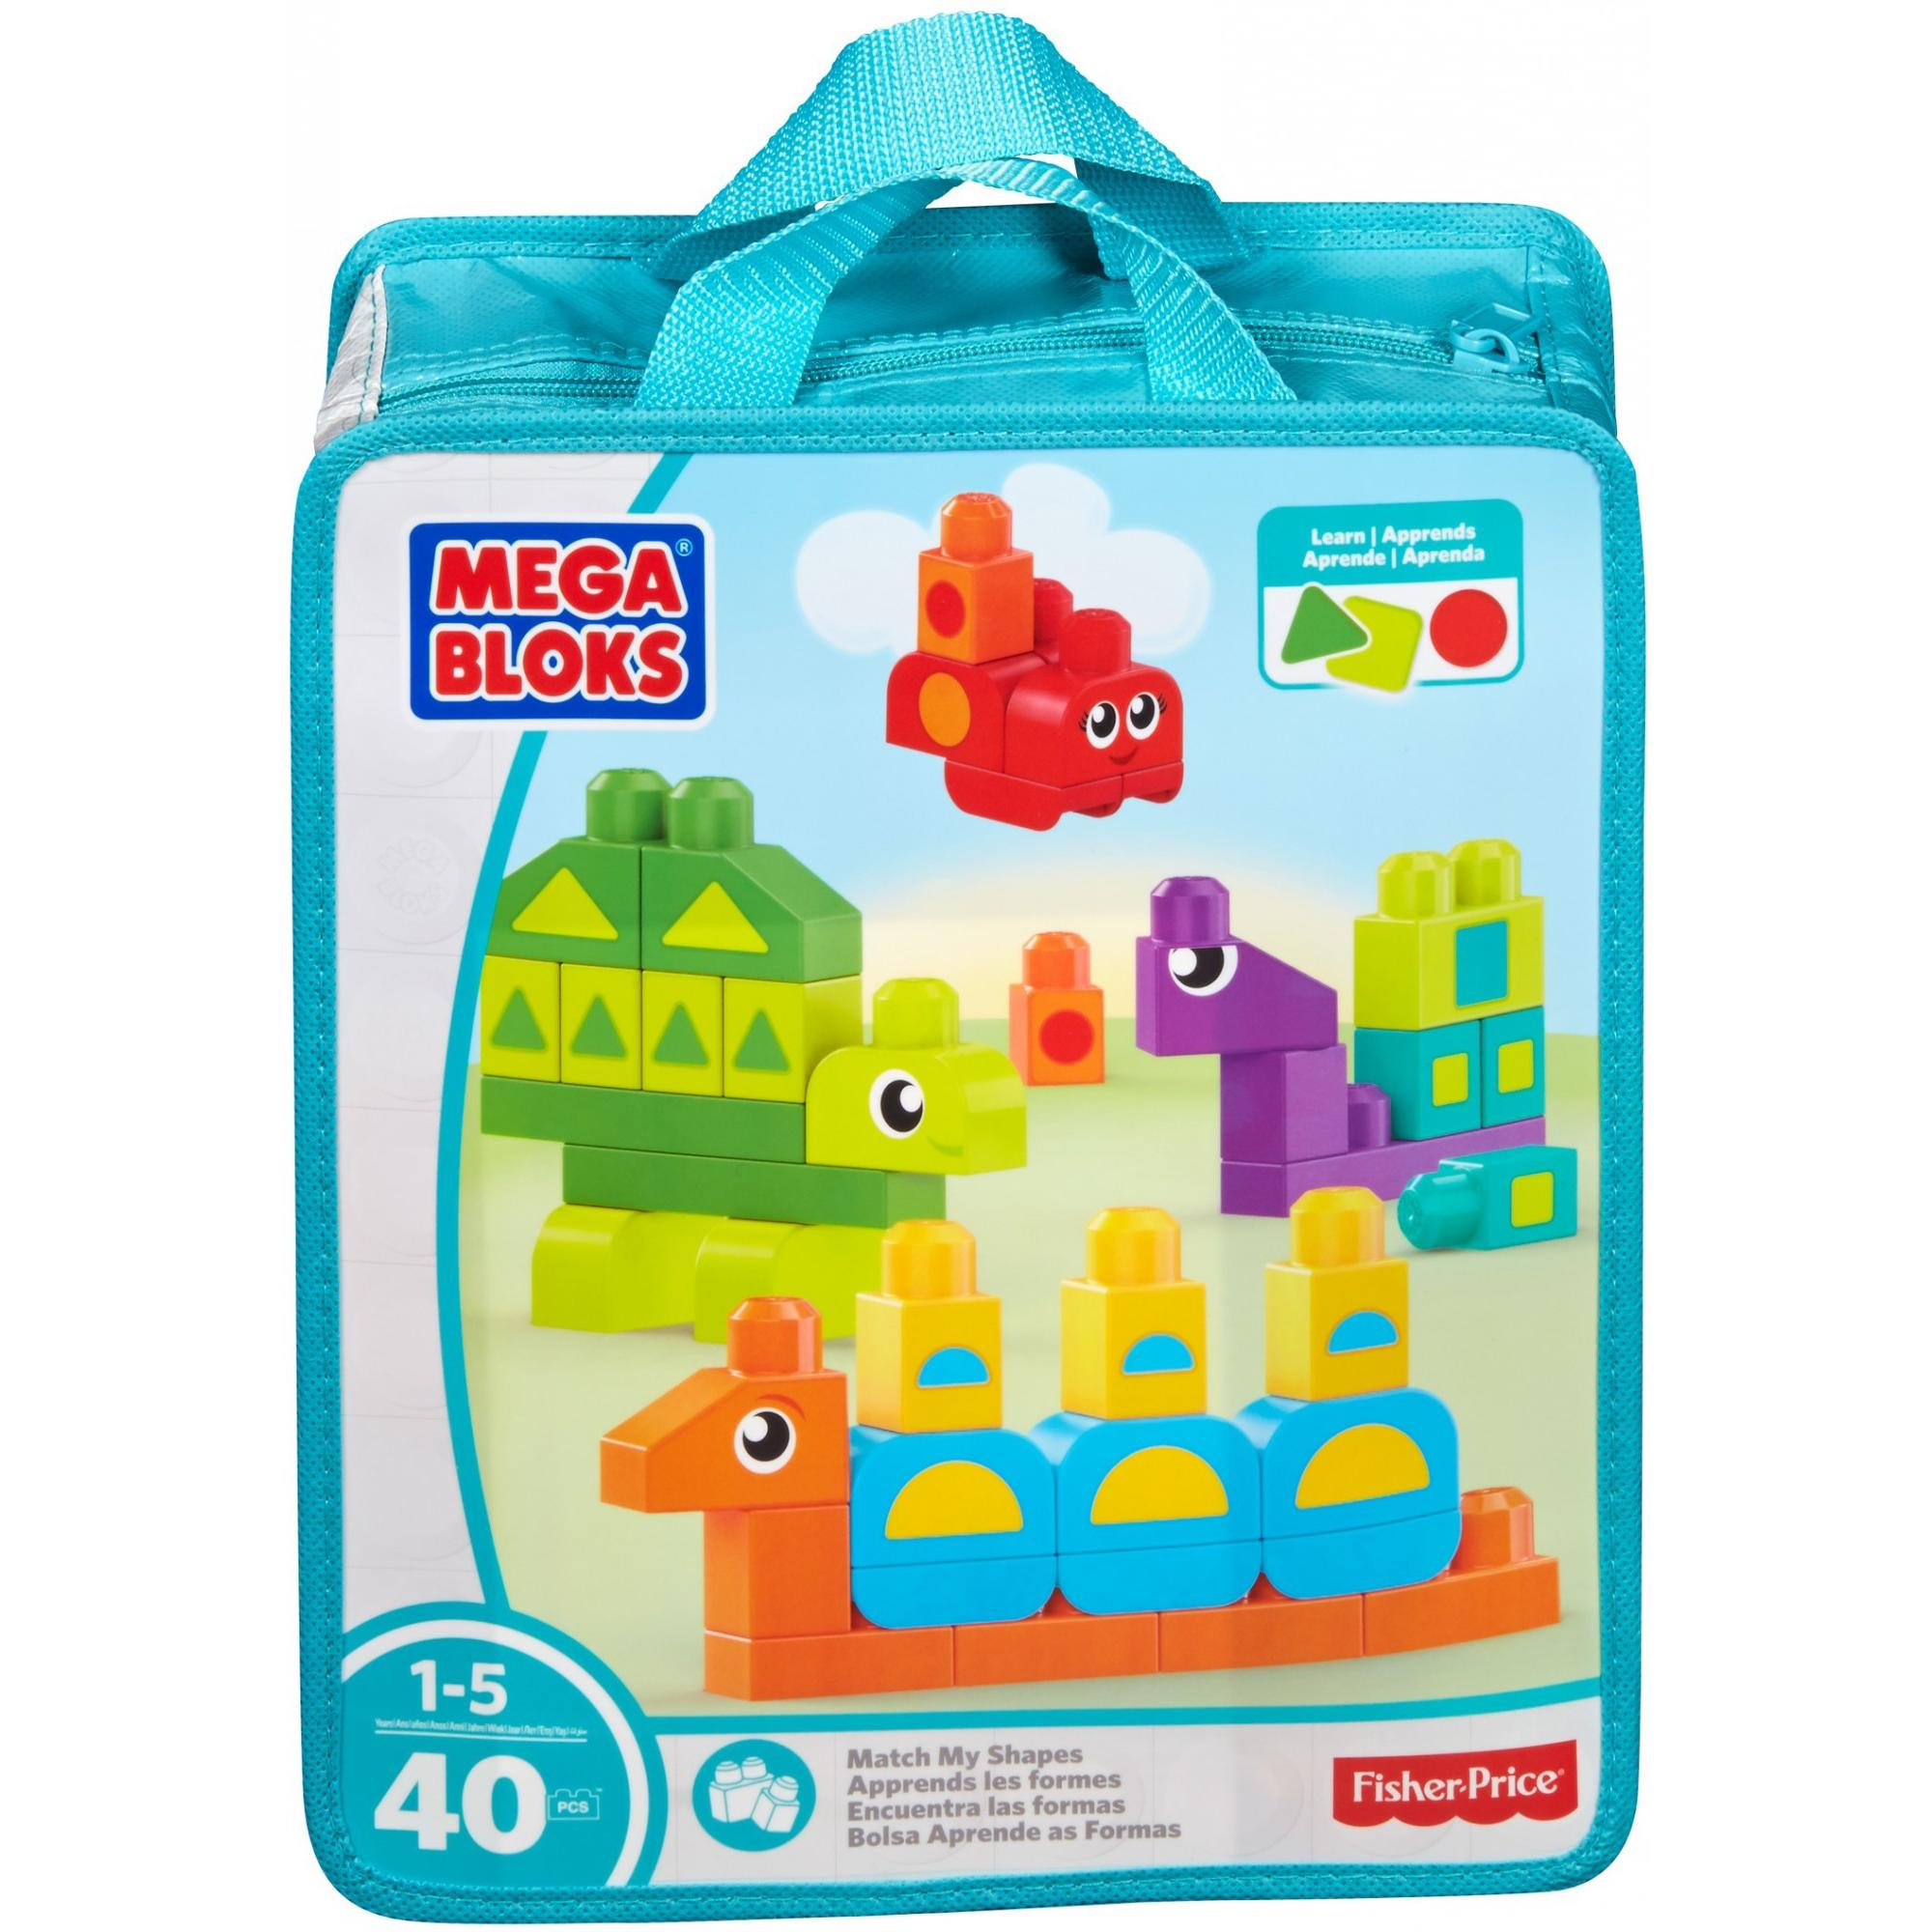 Mega Bloks Learn My Shapes Building Set by Mega Bloks